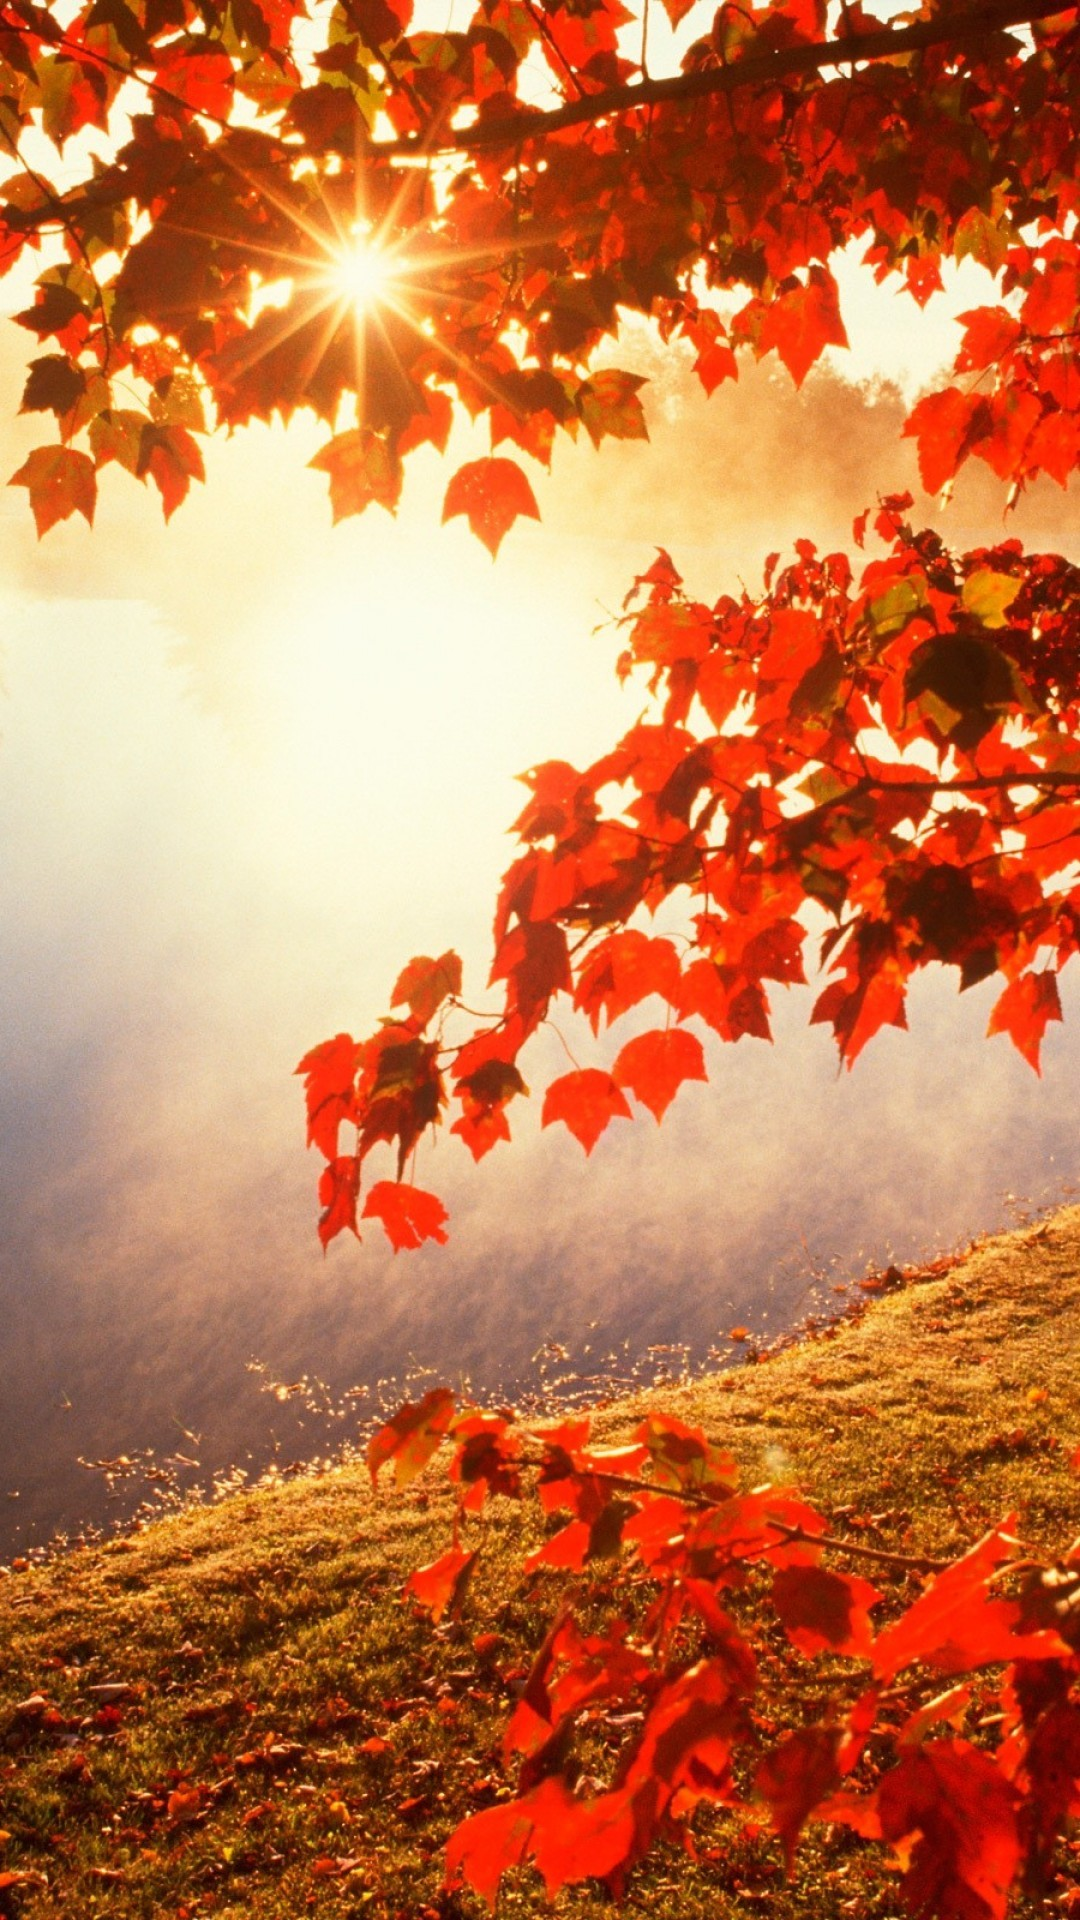 Fall Leaf Wallpaper For Mobile Iphone 6 Autumn Wallpaper 87 Images